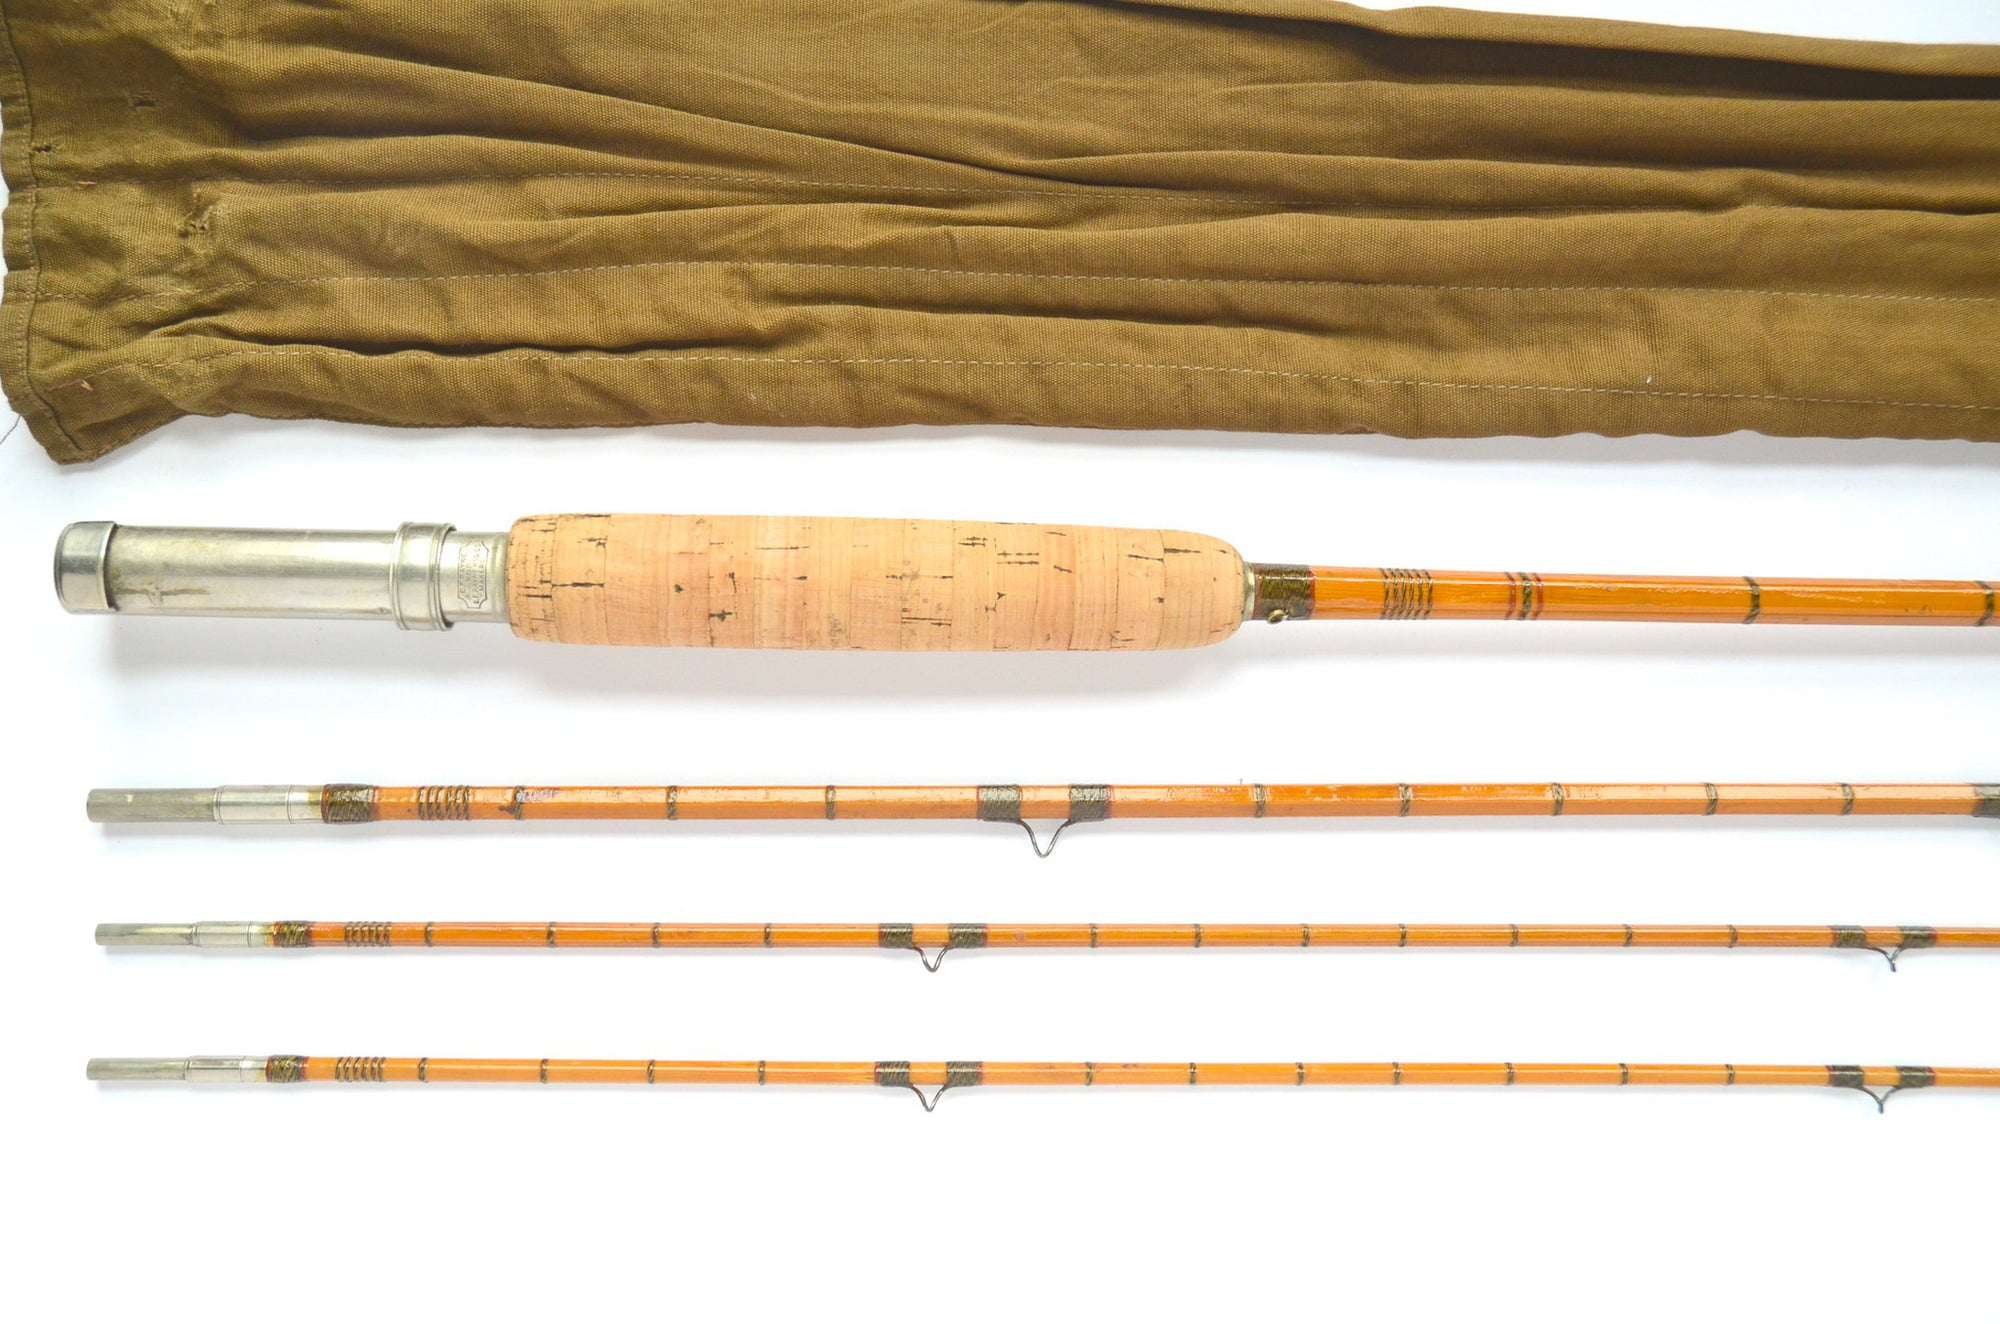 Ed Payne Fly Rod 9' 3/2 #5/6